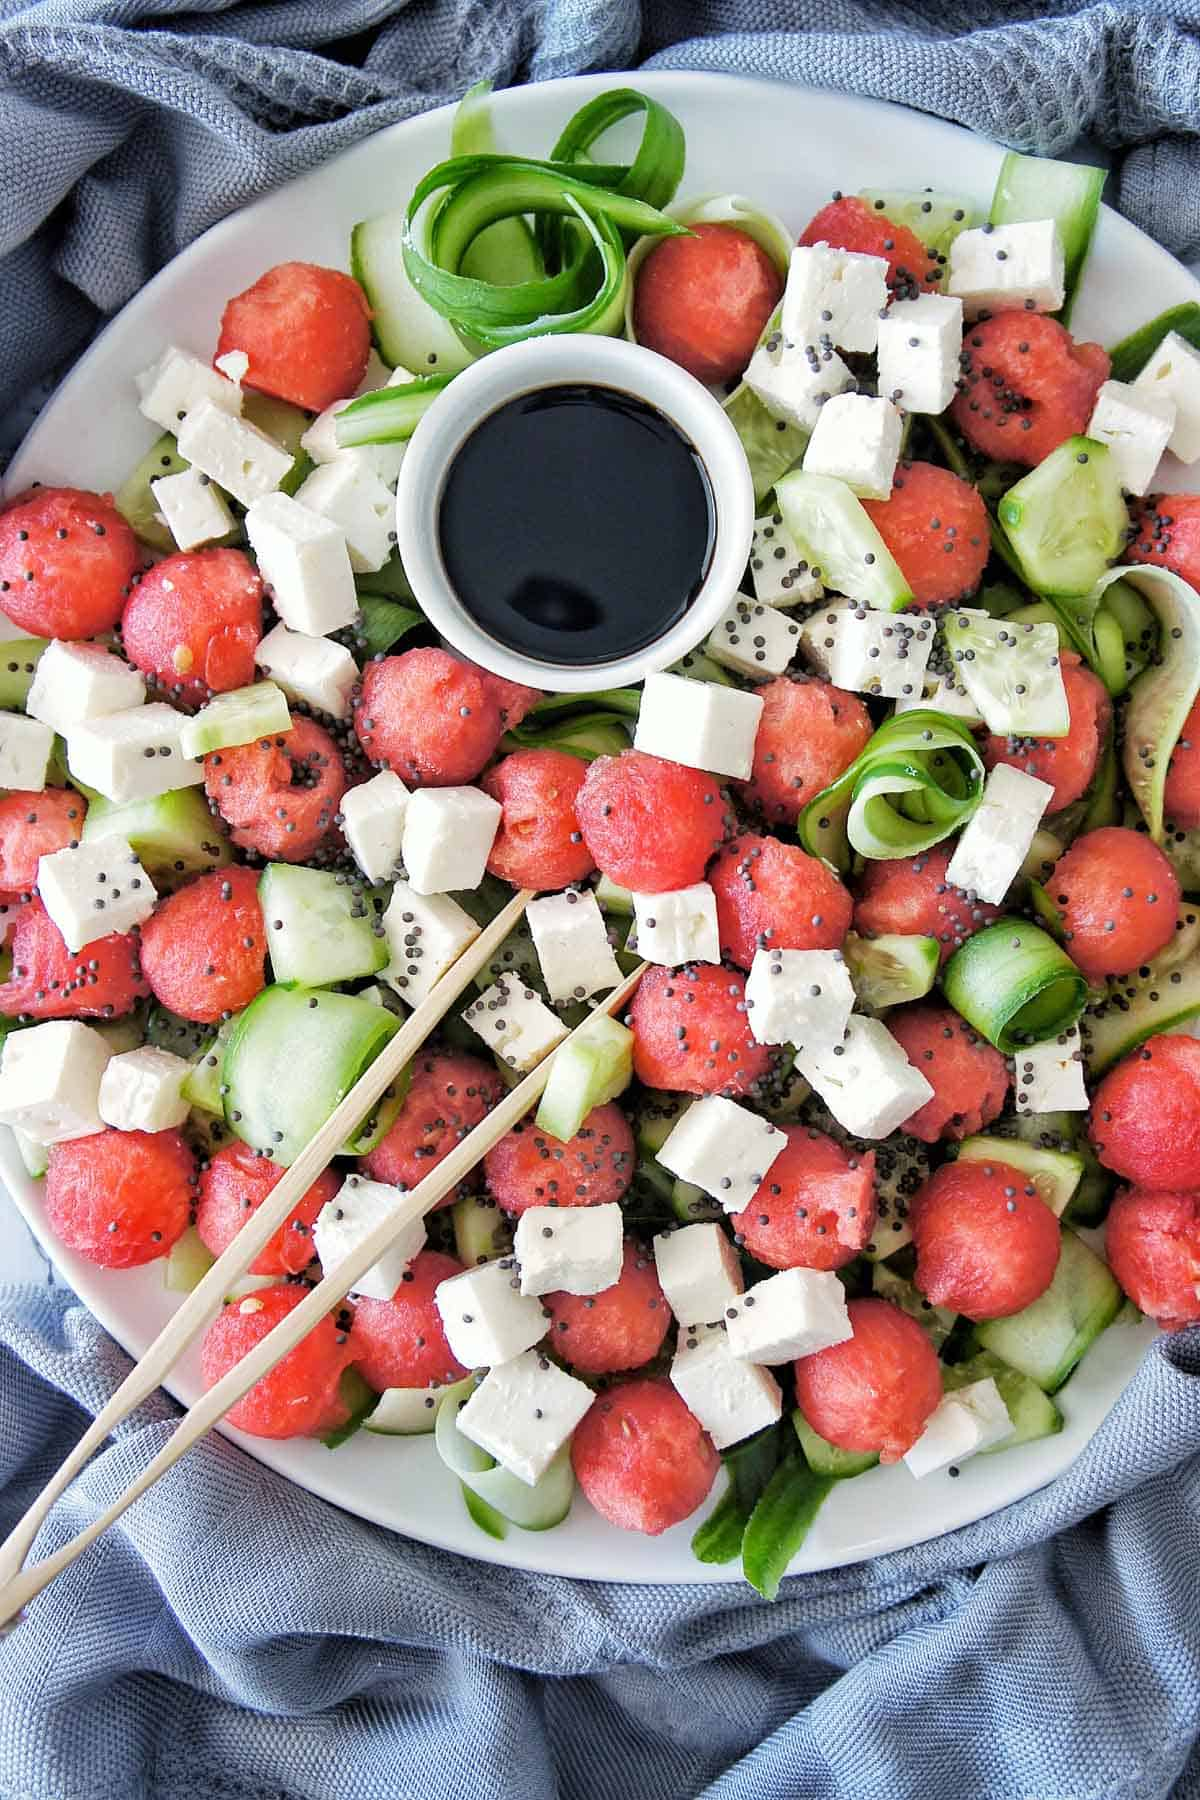 Watermelon cucumber salad with a small bowl of balsamic vinegar on a white plate